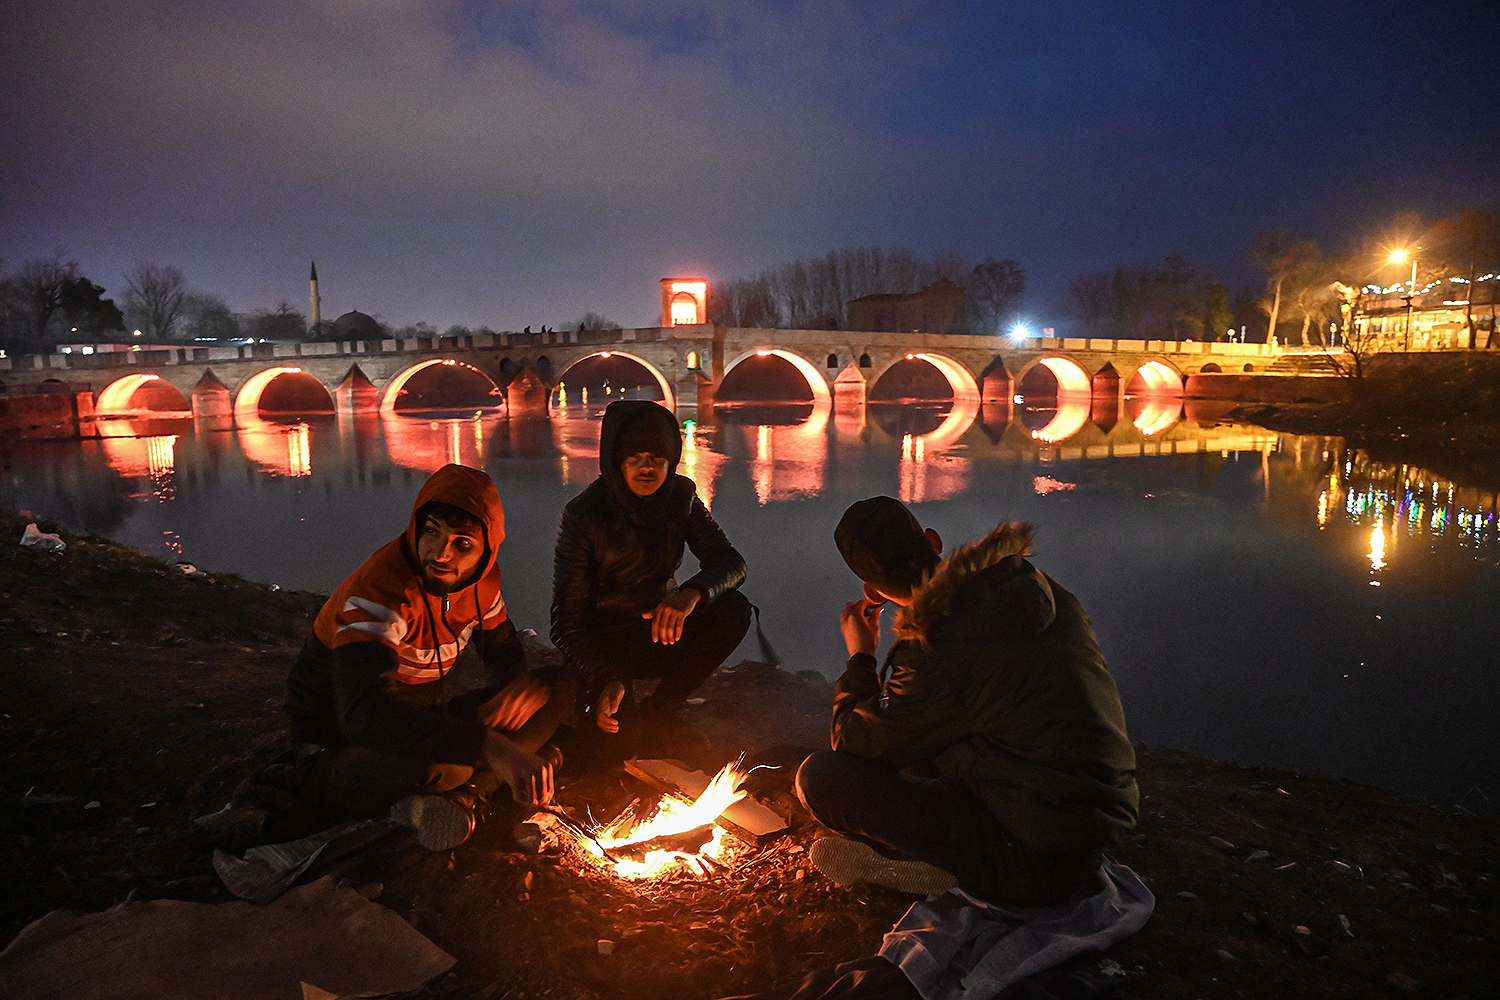 Migrants light a fire on the banks of the Tunca river in Edirne, Turkey, after an attempt to enter Europe at the Turkey-Greece border on March 5. Migrants and refugees hoping to enter Greece from Turkey fanned out across the border, maintaining pressure after Ankara declared its borders with the European Union open. OZAN KOSE/AFP via Getty Images